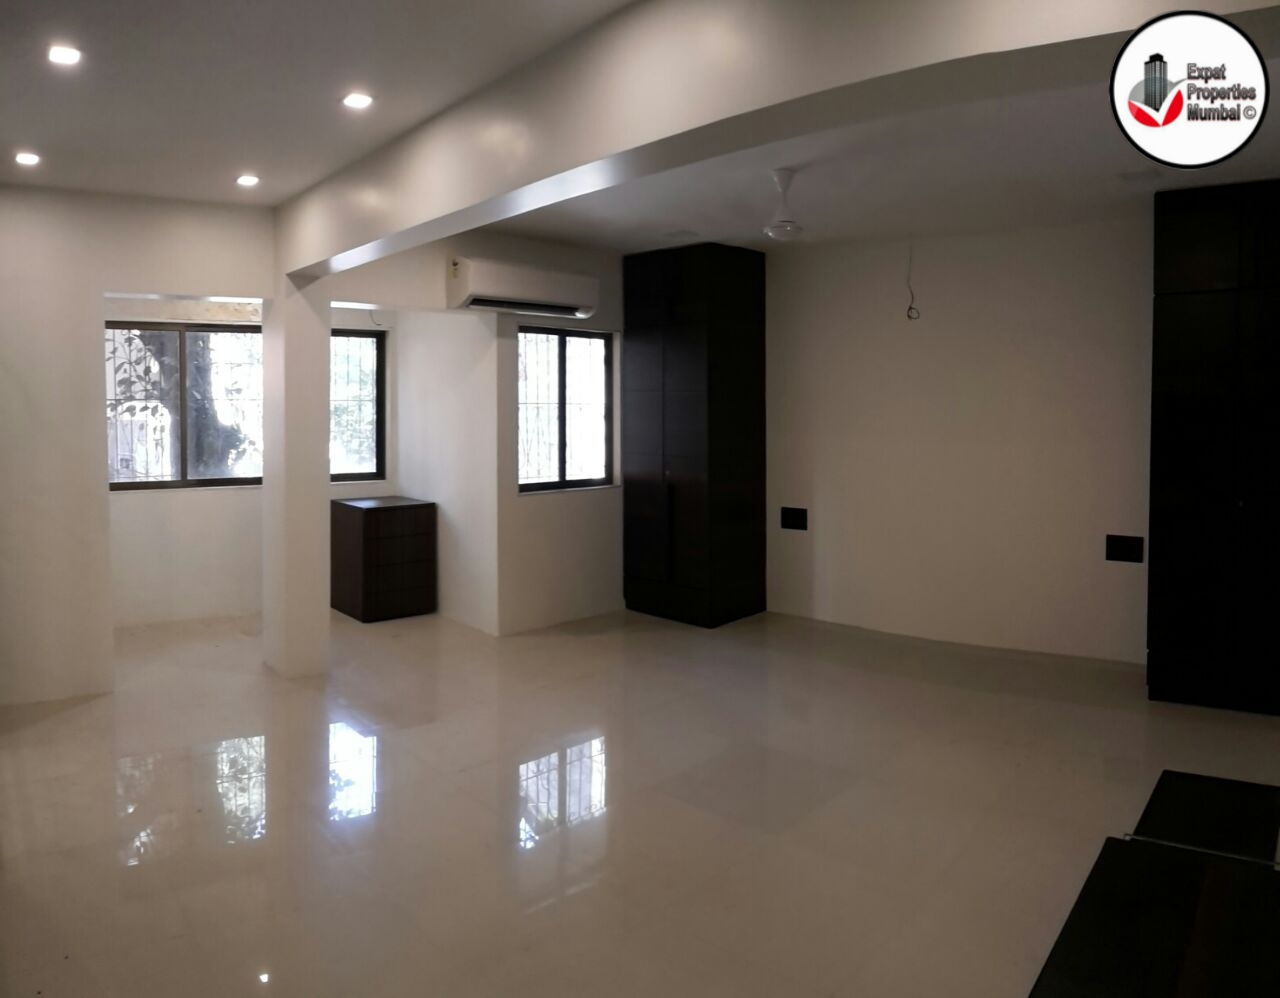 3 Bhk Apartment For Rent In Perry Cross Bandra